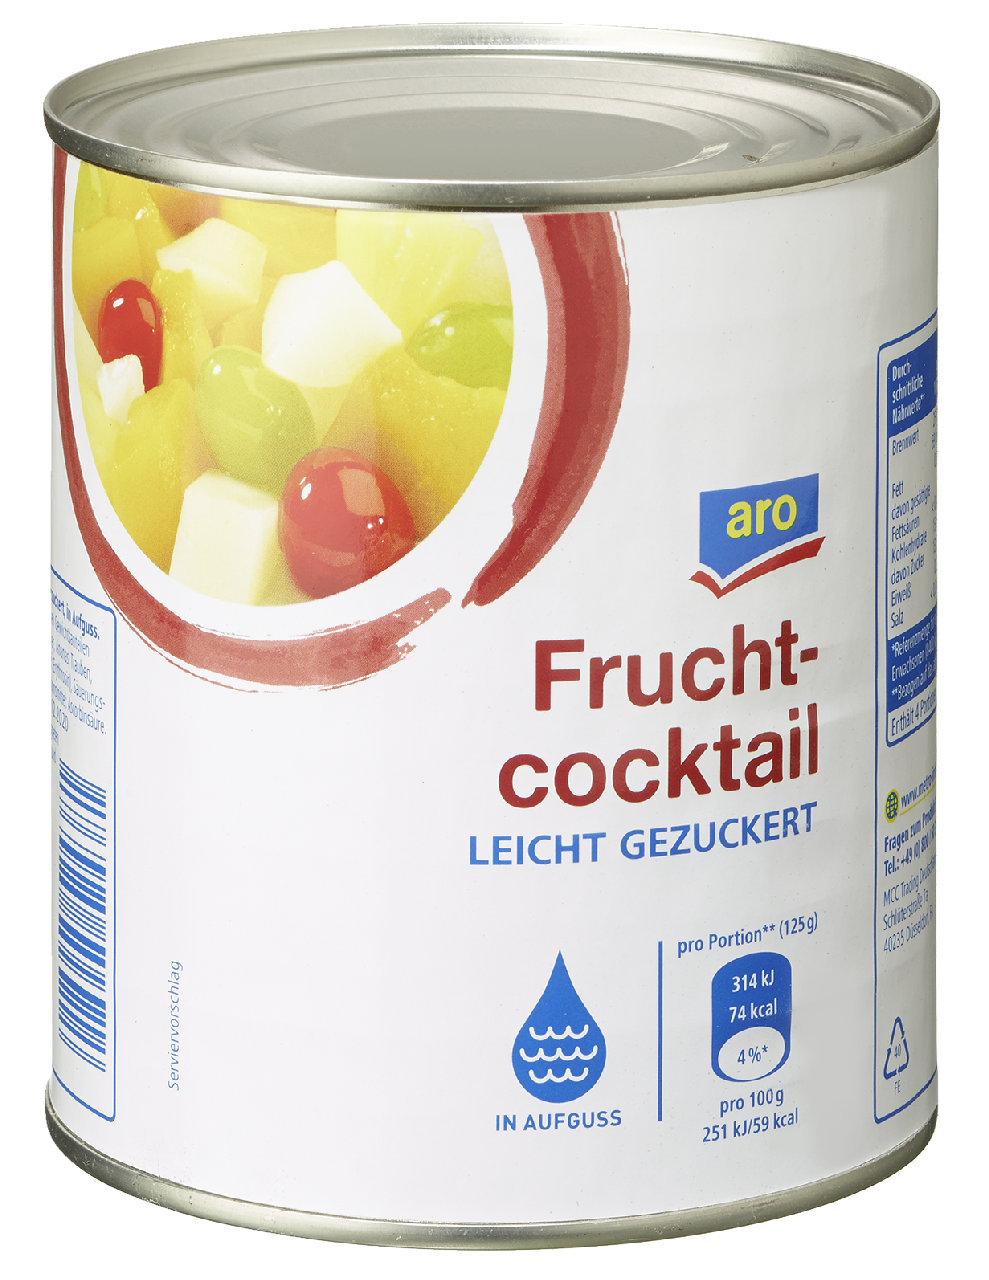 Fruchtcocktail dose